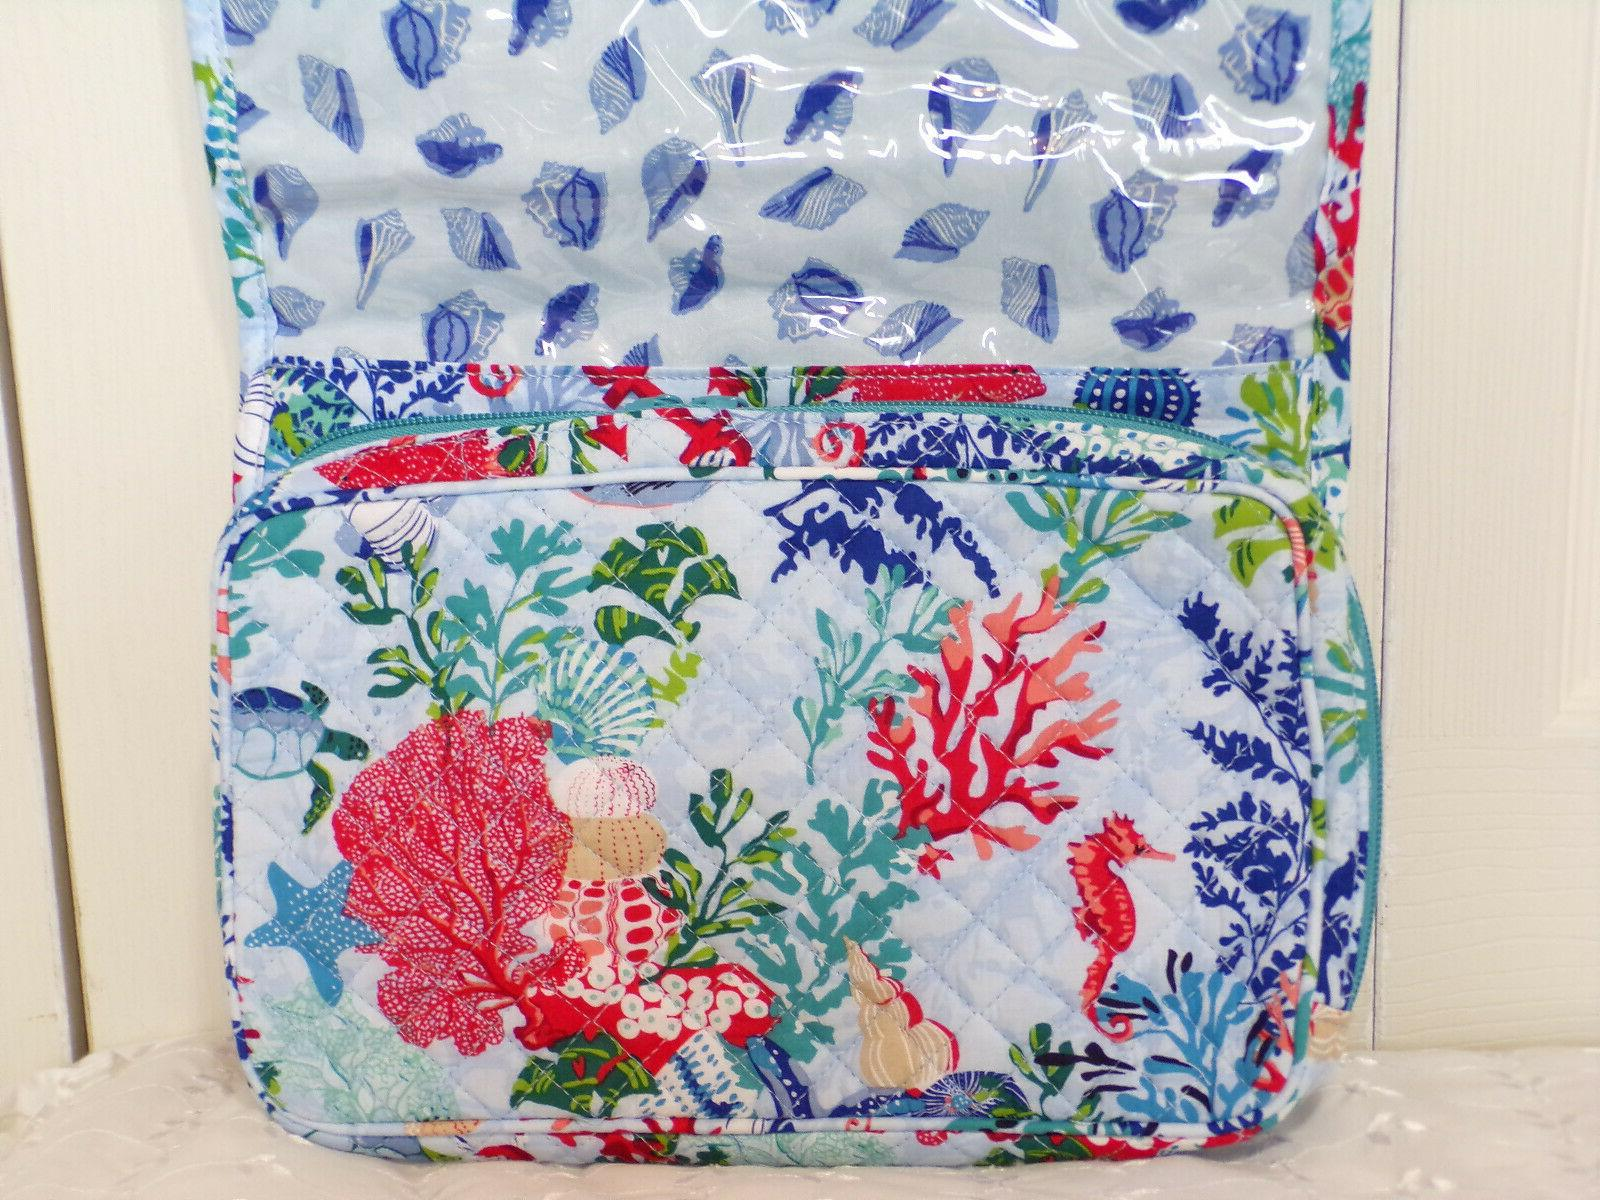 - ICONIC HANGING TRAVEL ORGANIZER QUILTED COTTON